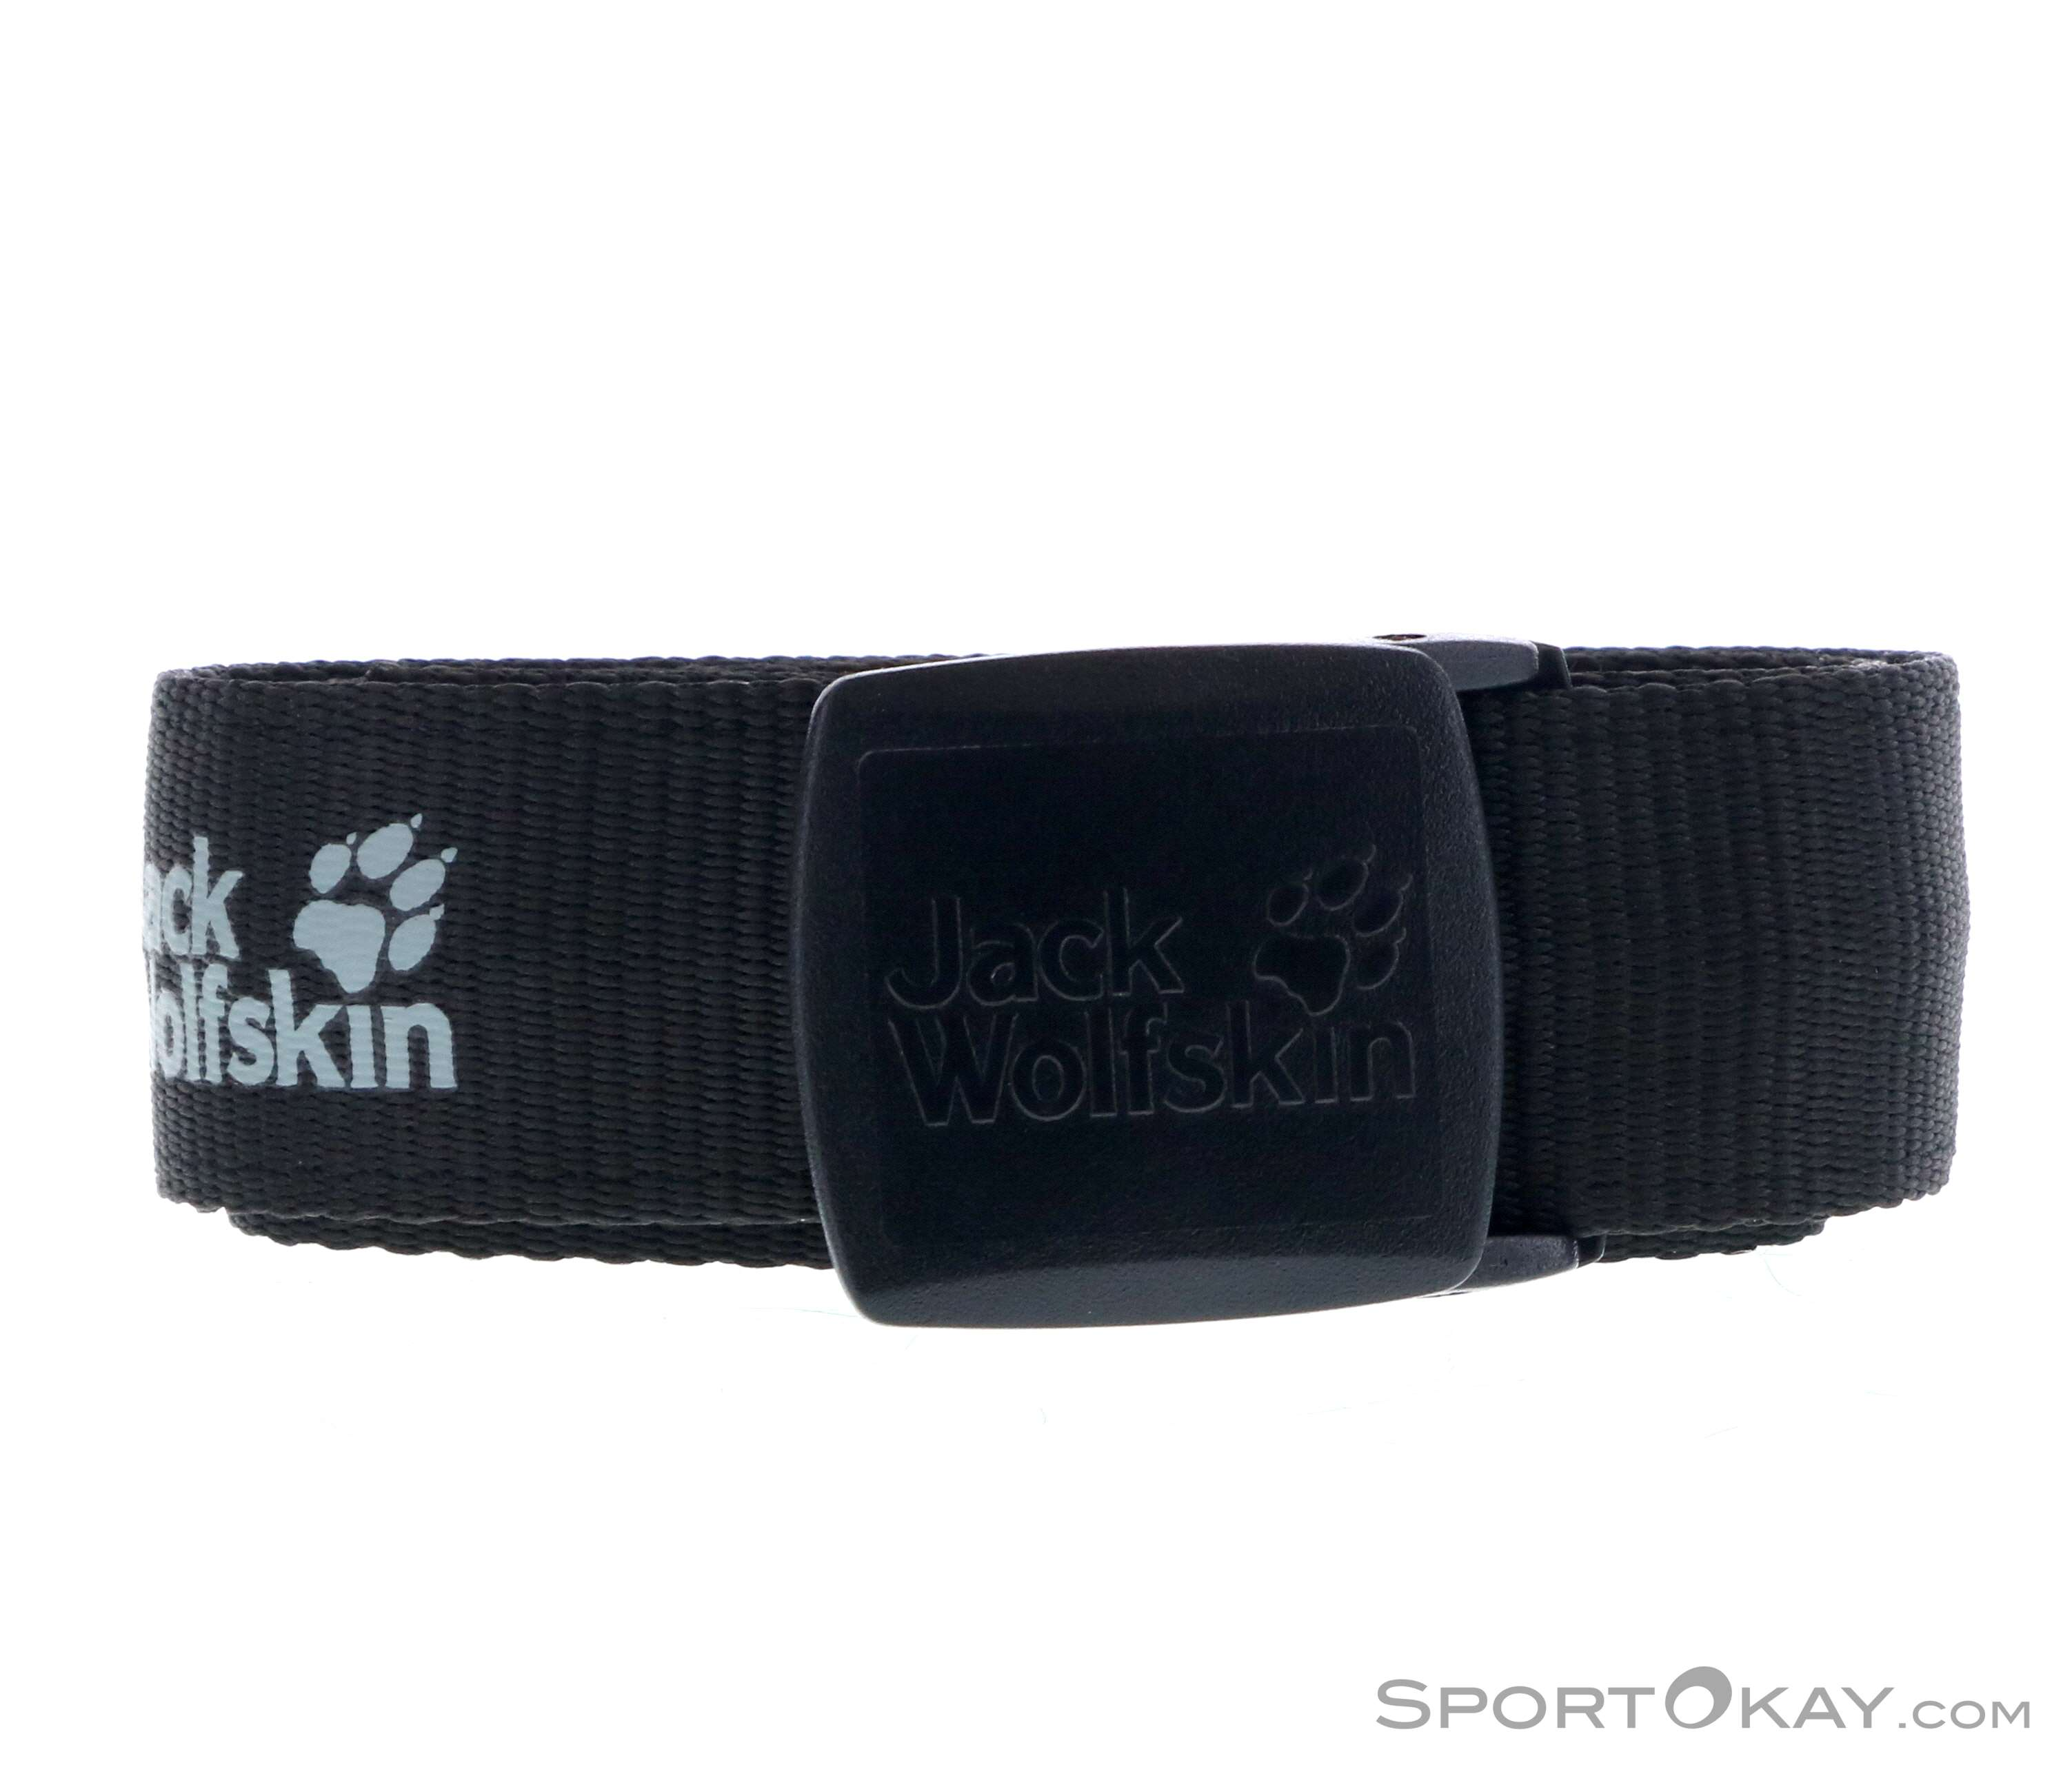 Jack Wolfskin Secret Belt Wide Gürtel-Schwarz-One Size